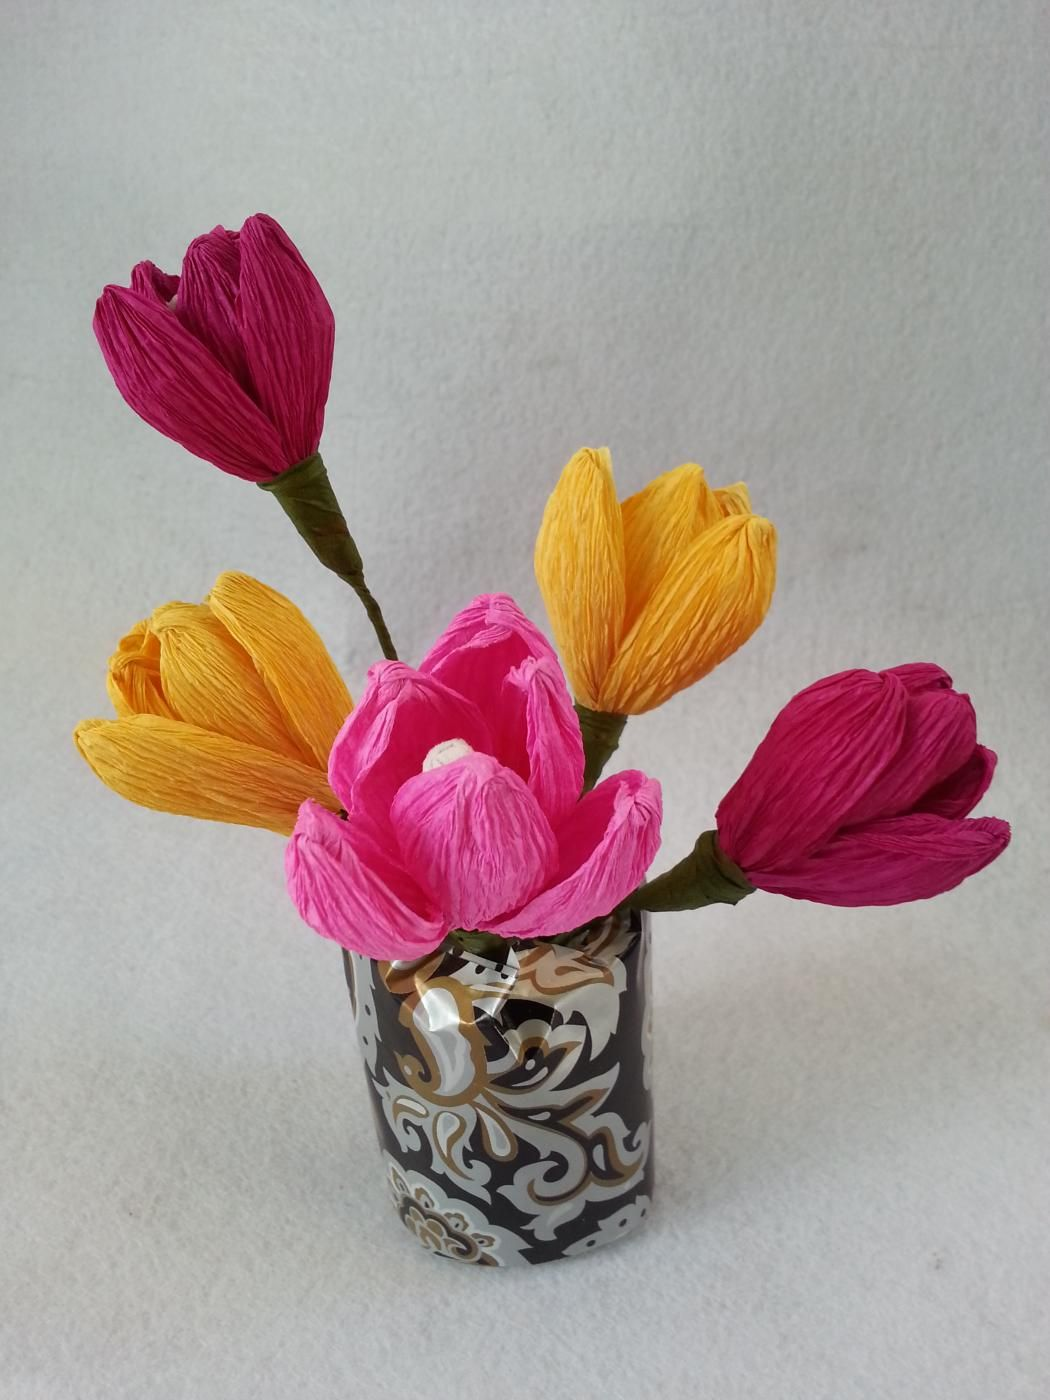 Diy crepe paper tulip flowers pinterest crepe paper tulips learn how to make these tulipsnbspusing crepe paper streamers nbspyou can mightylinksfo